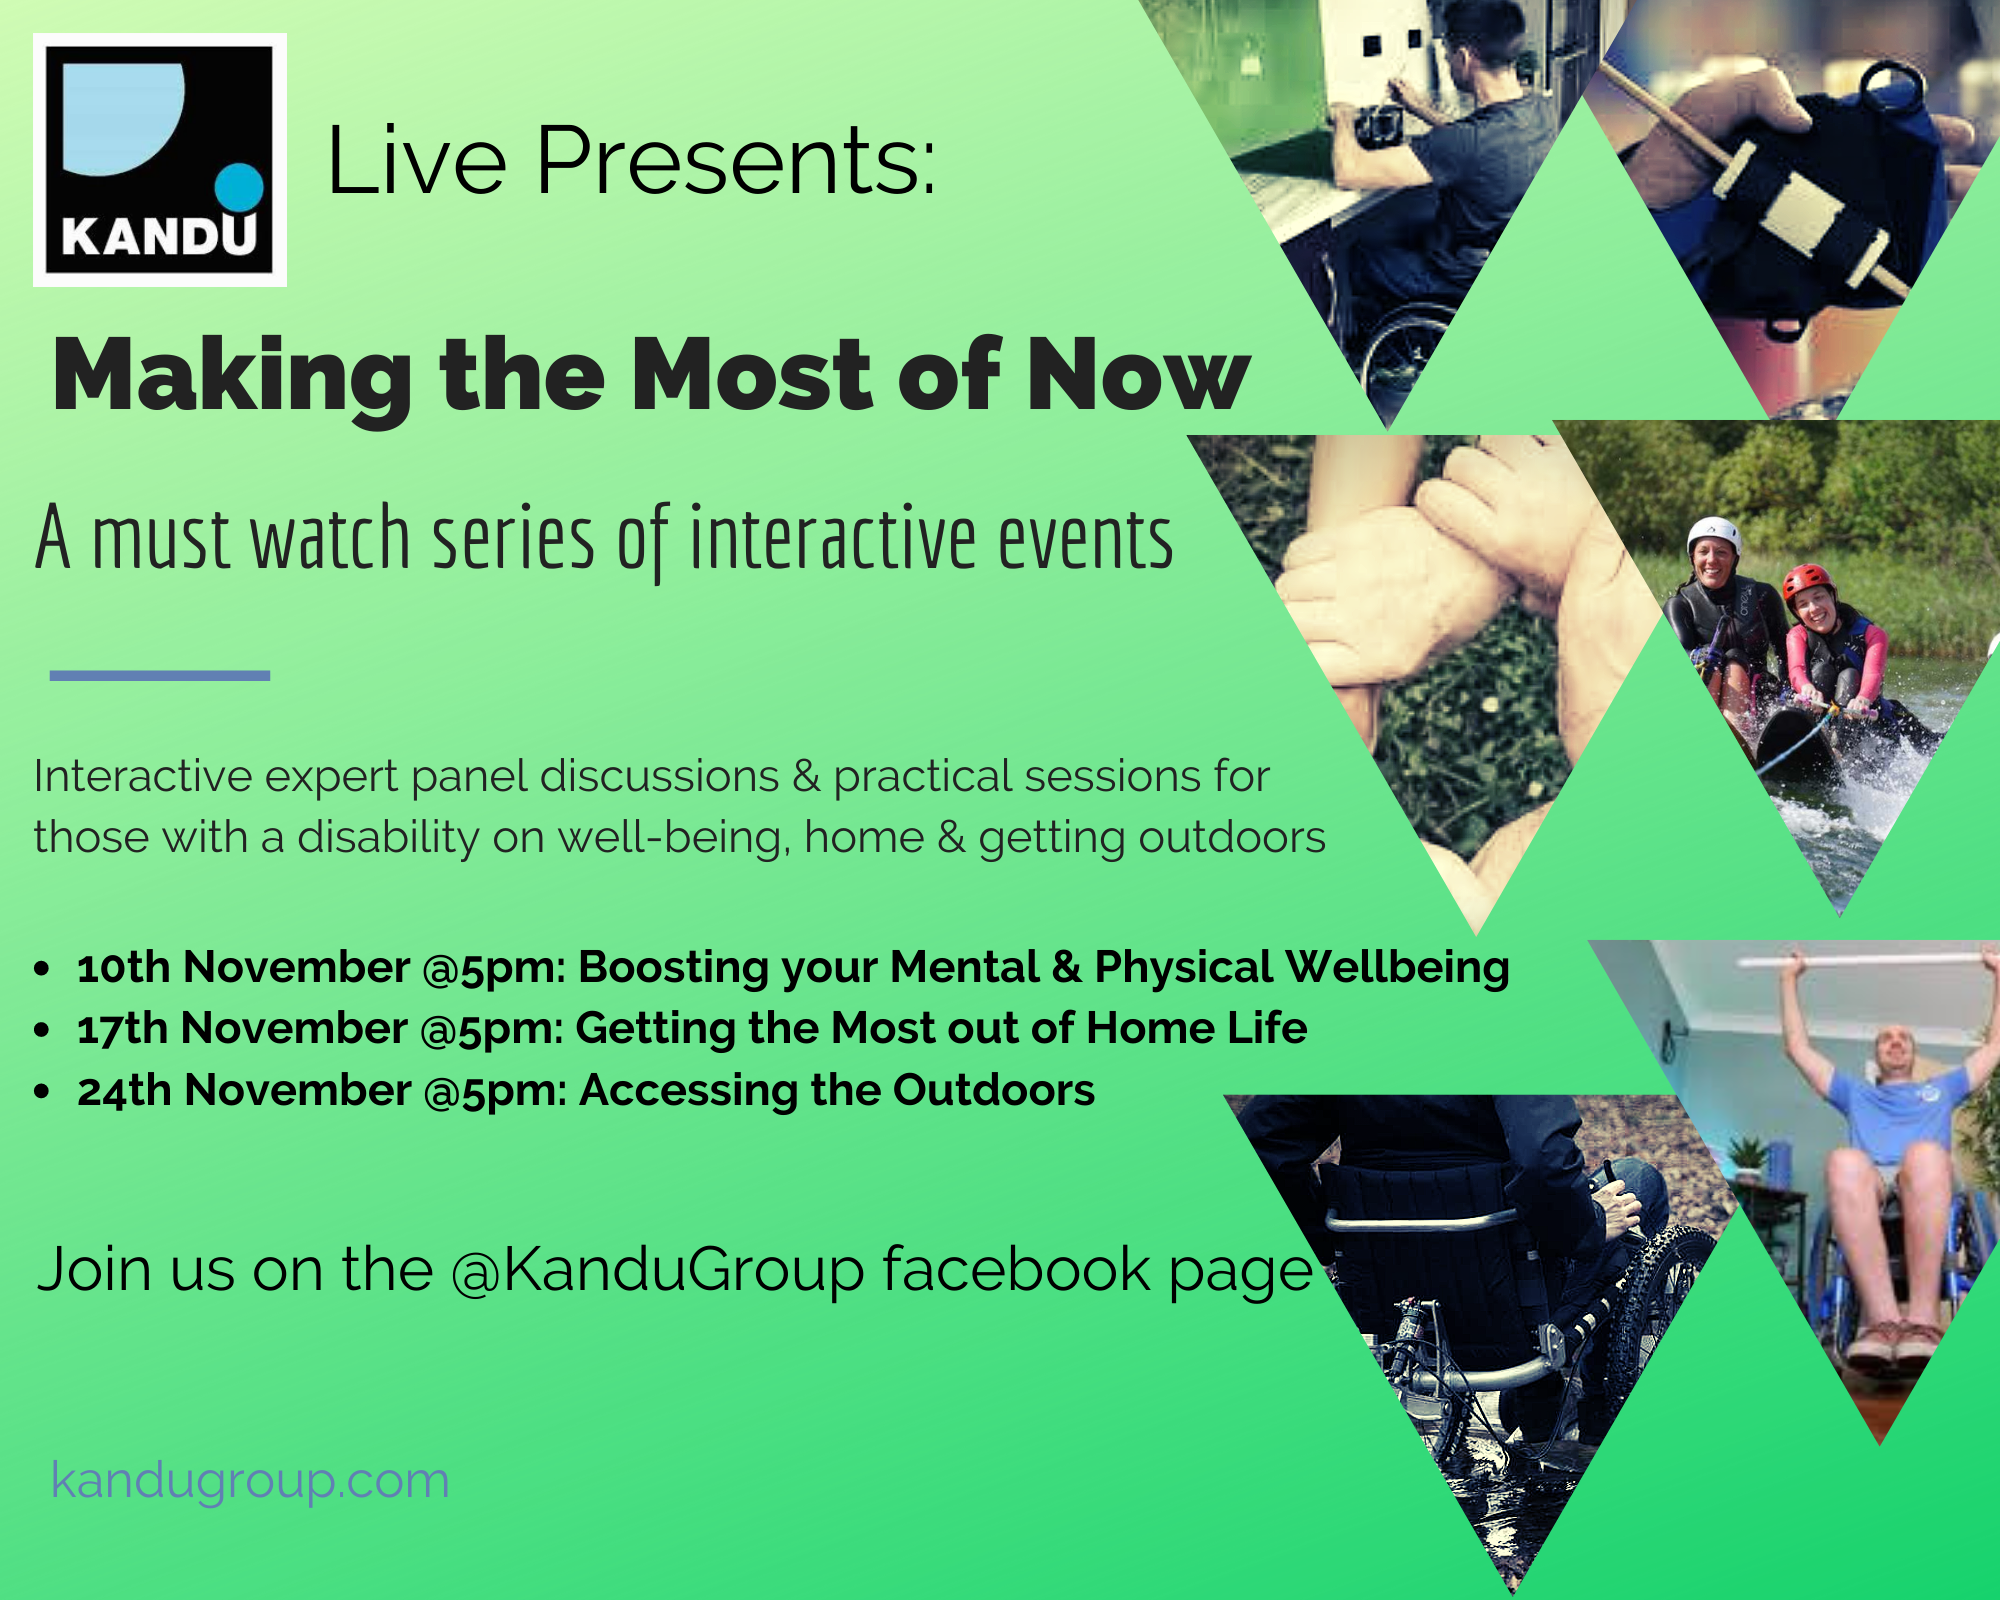 JOIN US for a series of must-watch online events this November